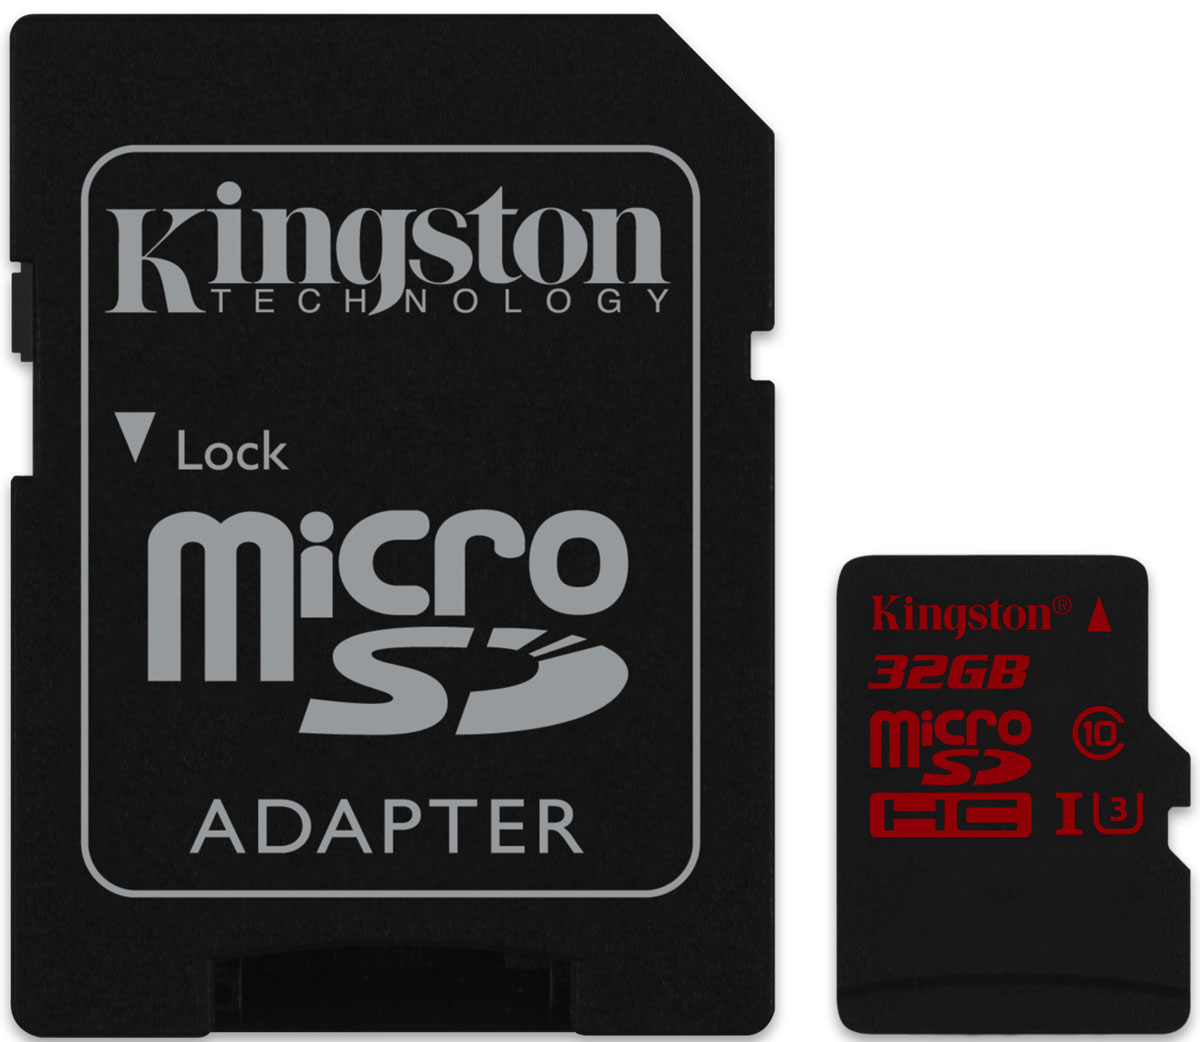 Kingston microSDHC Class 10 U3 UHS-I 32GB карта памяти с адаптером карта памяти other jvin 8gtf